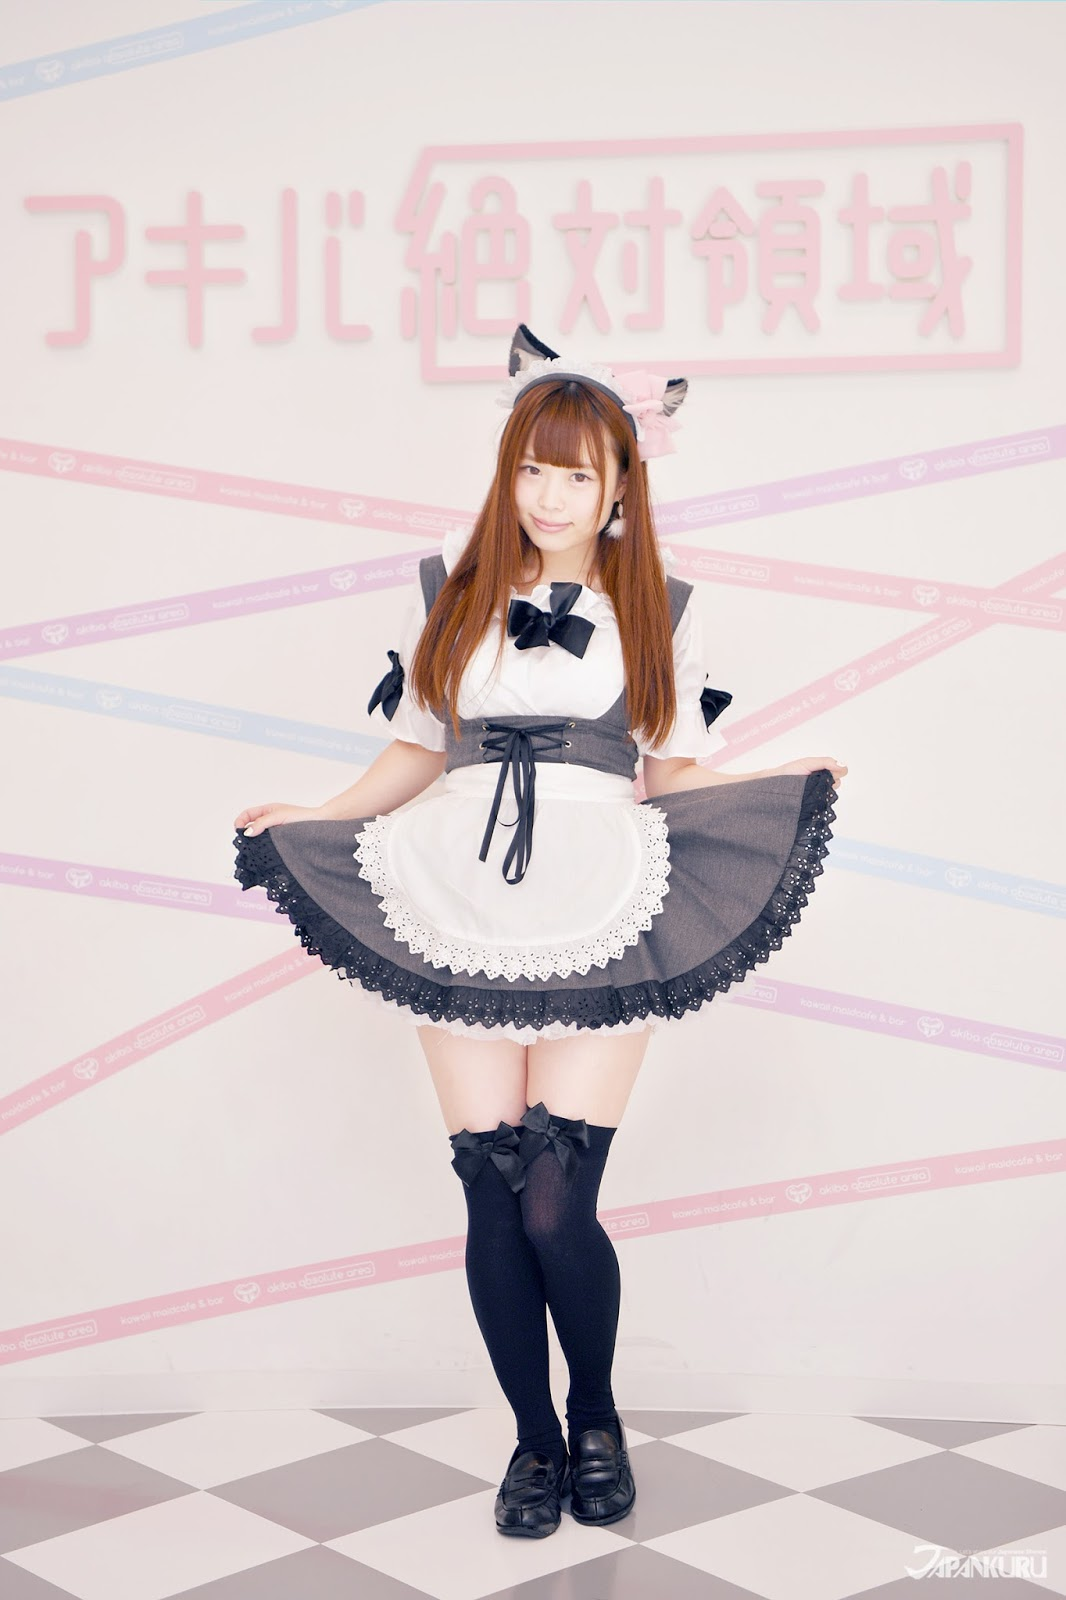 Maid Cafe Japan Price